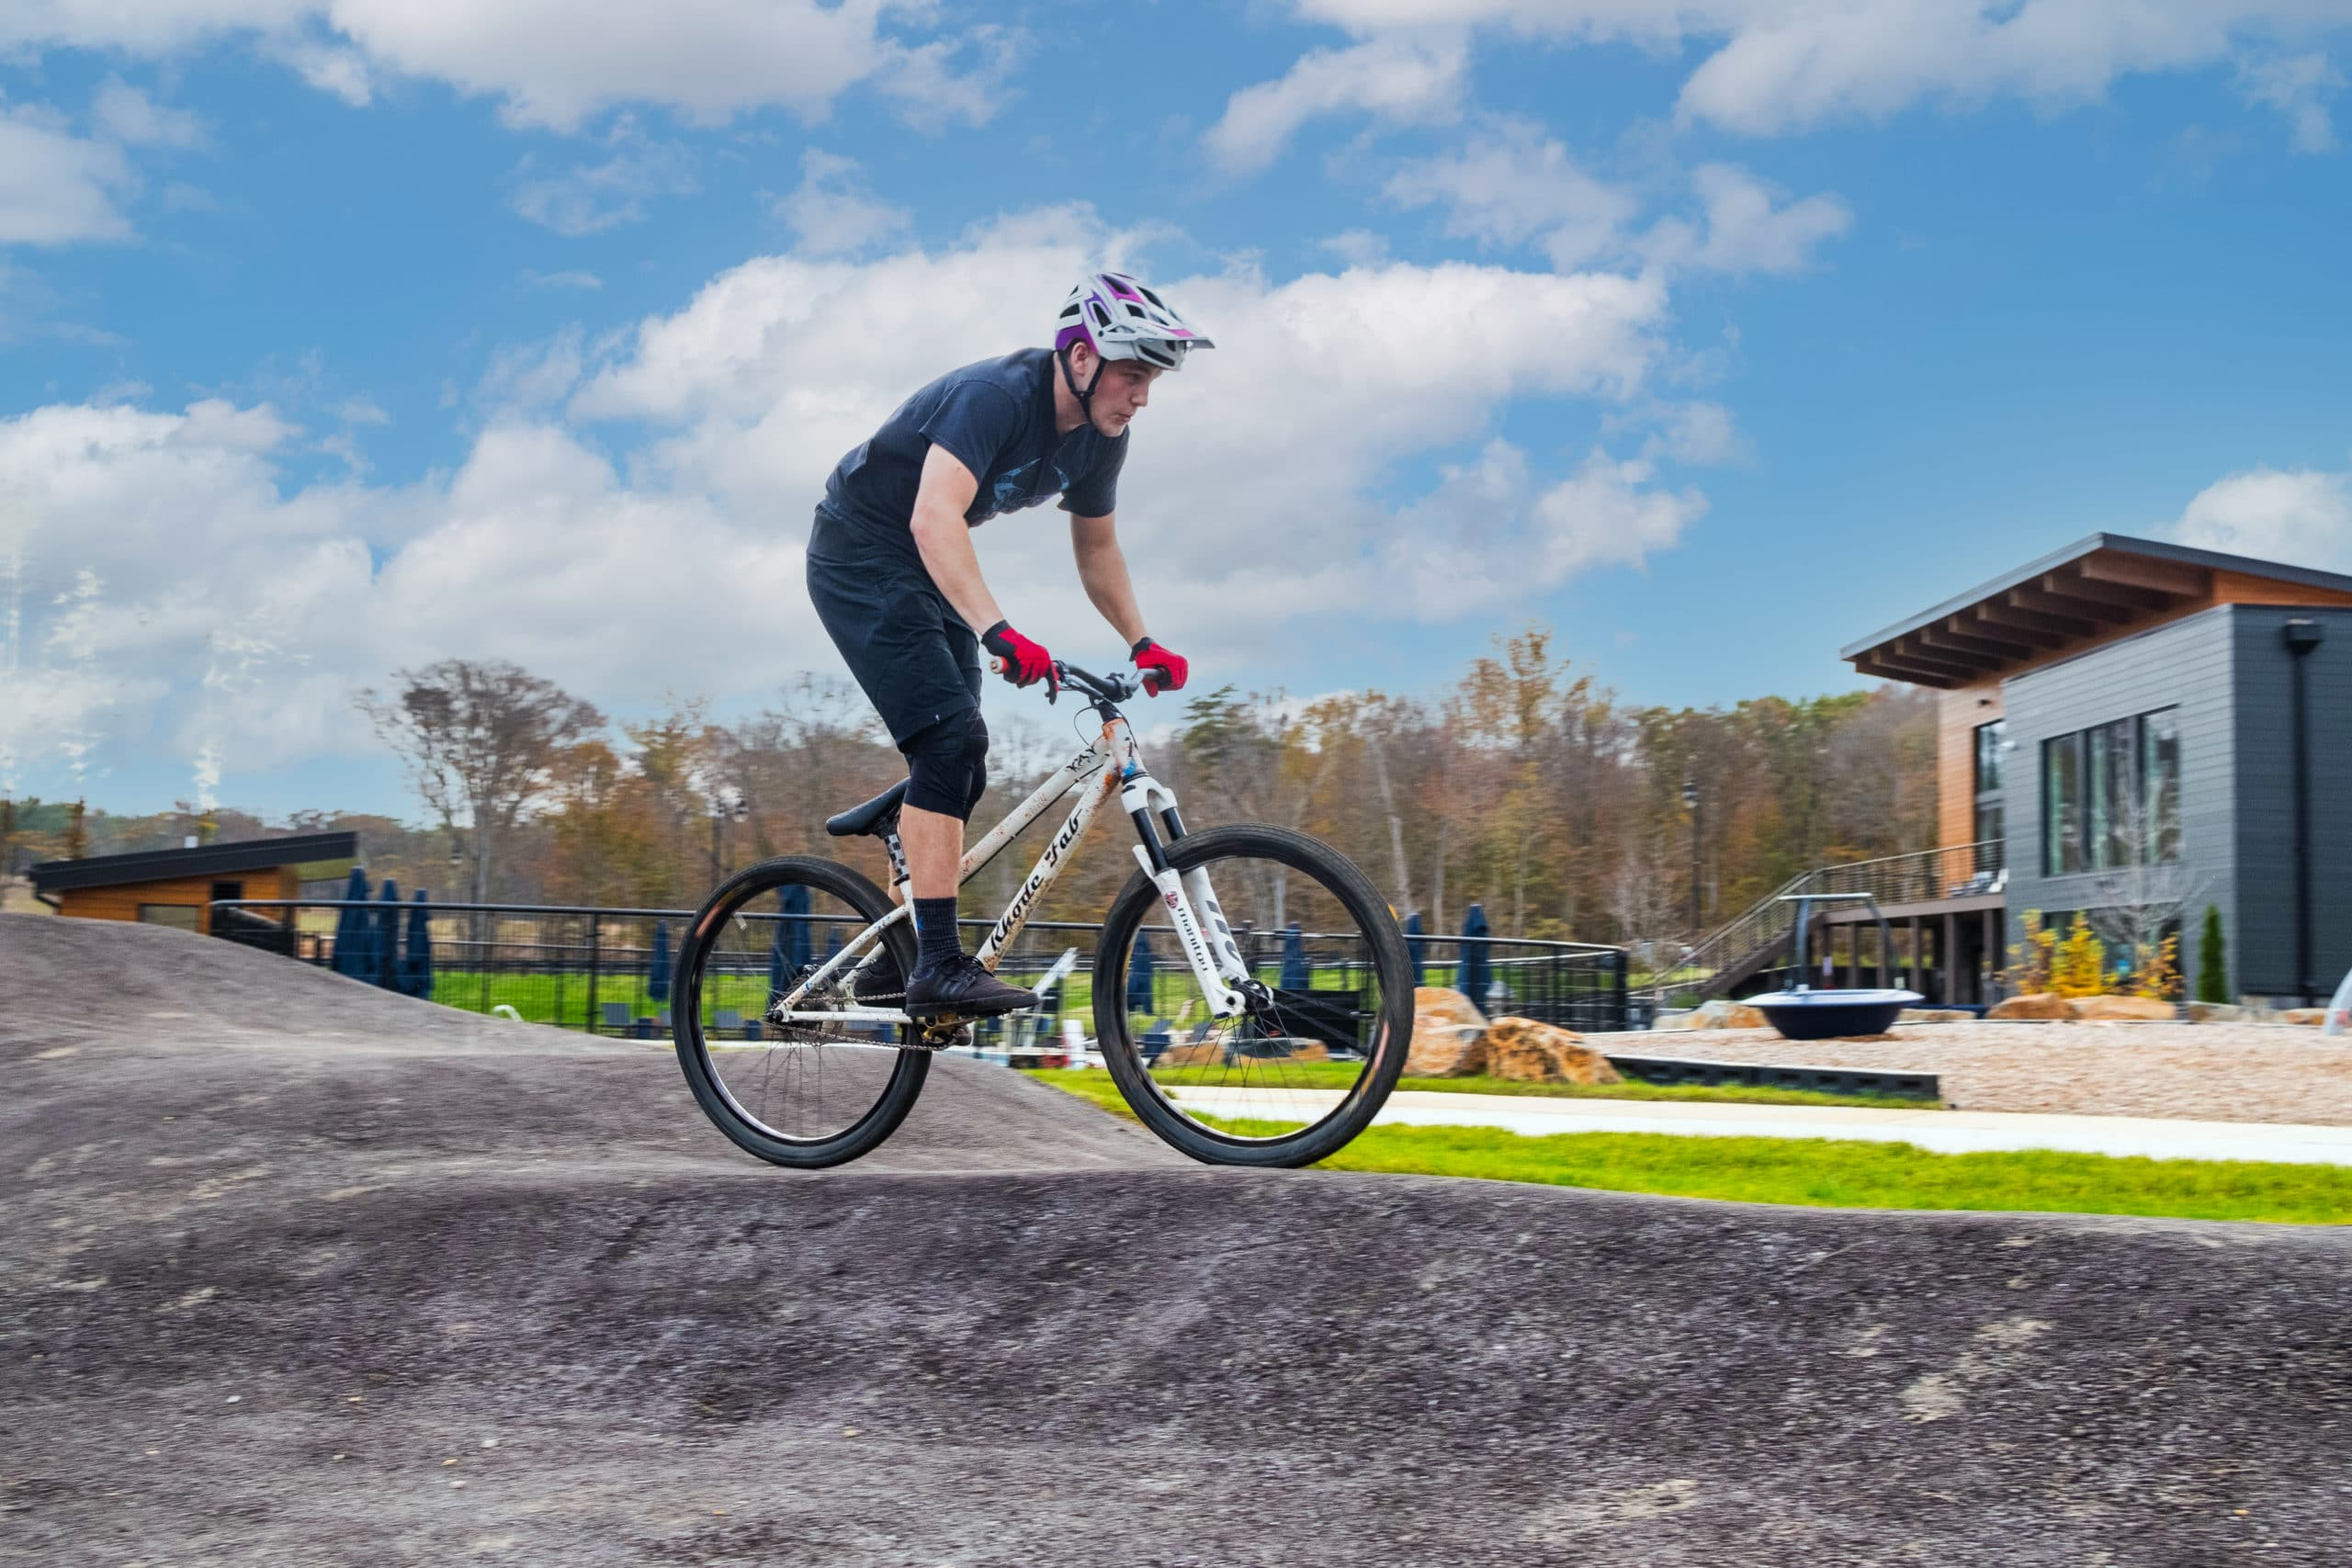 Enjoy the thrills of Watershed's bike pump track